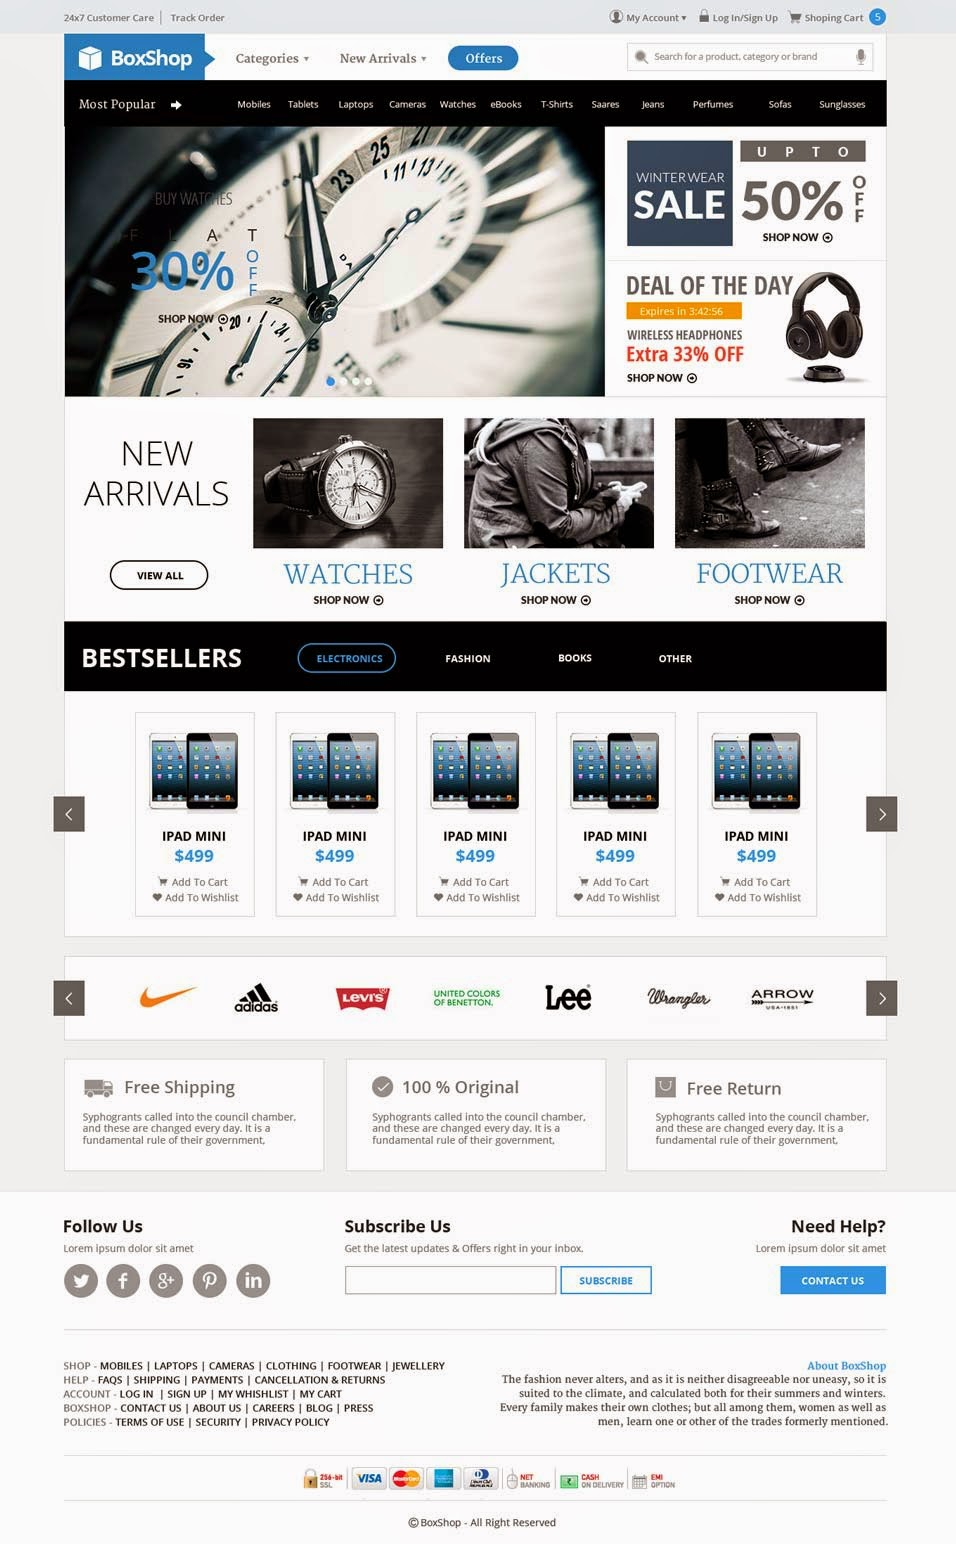 BoxShop – Free Ecommerce Website PSD Template